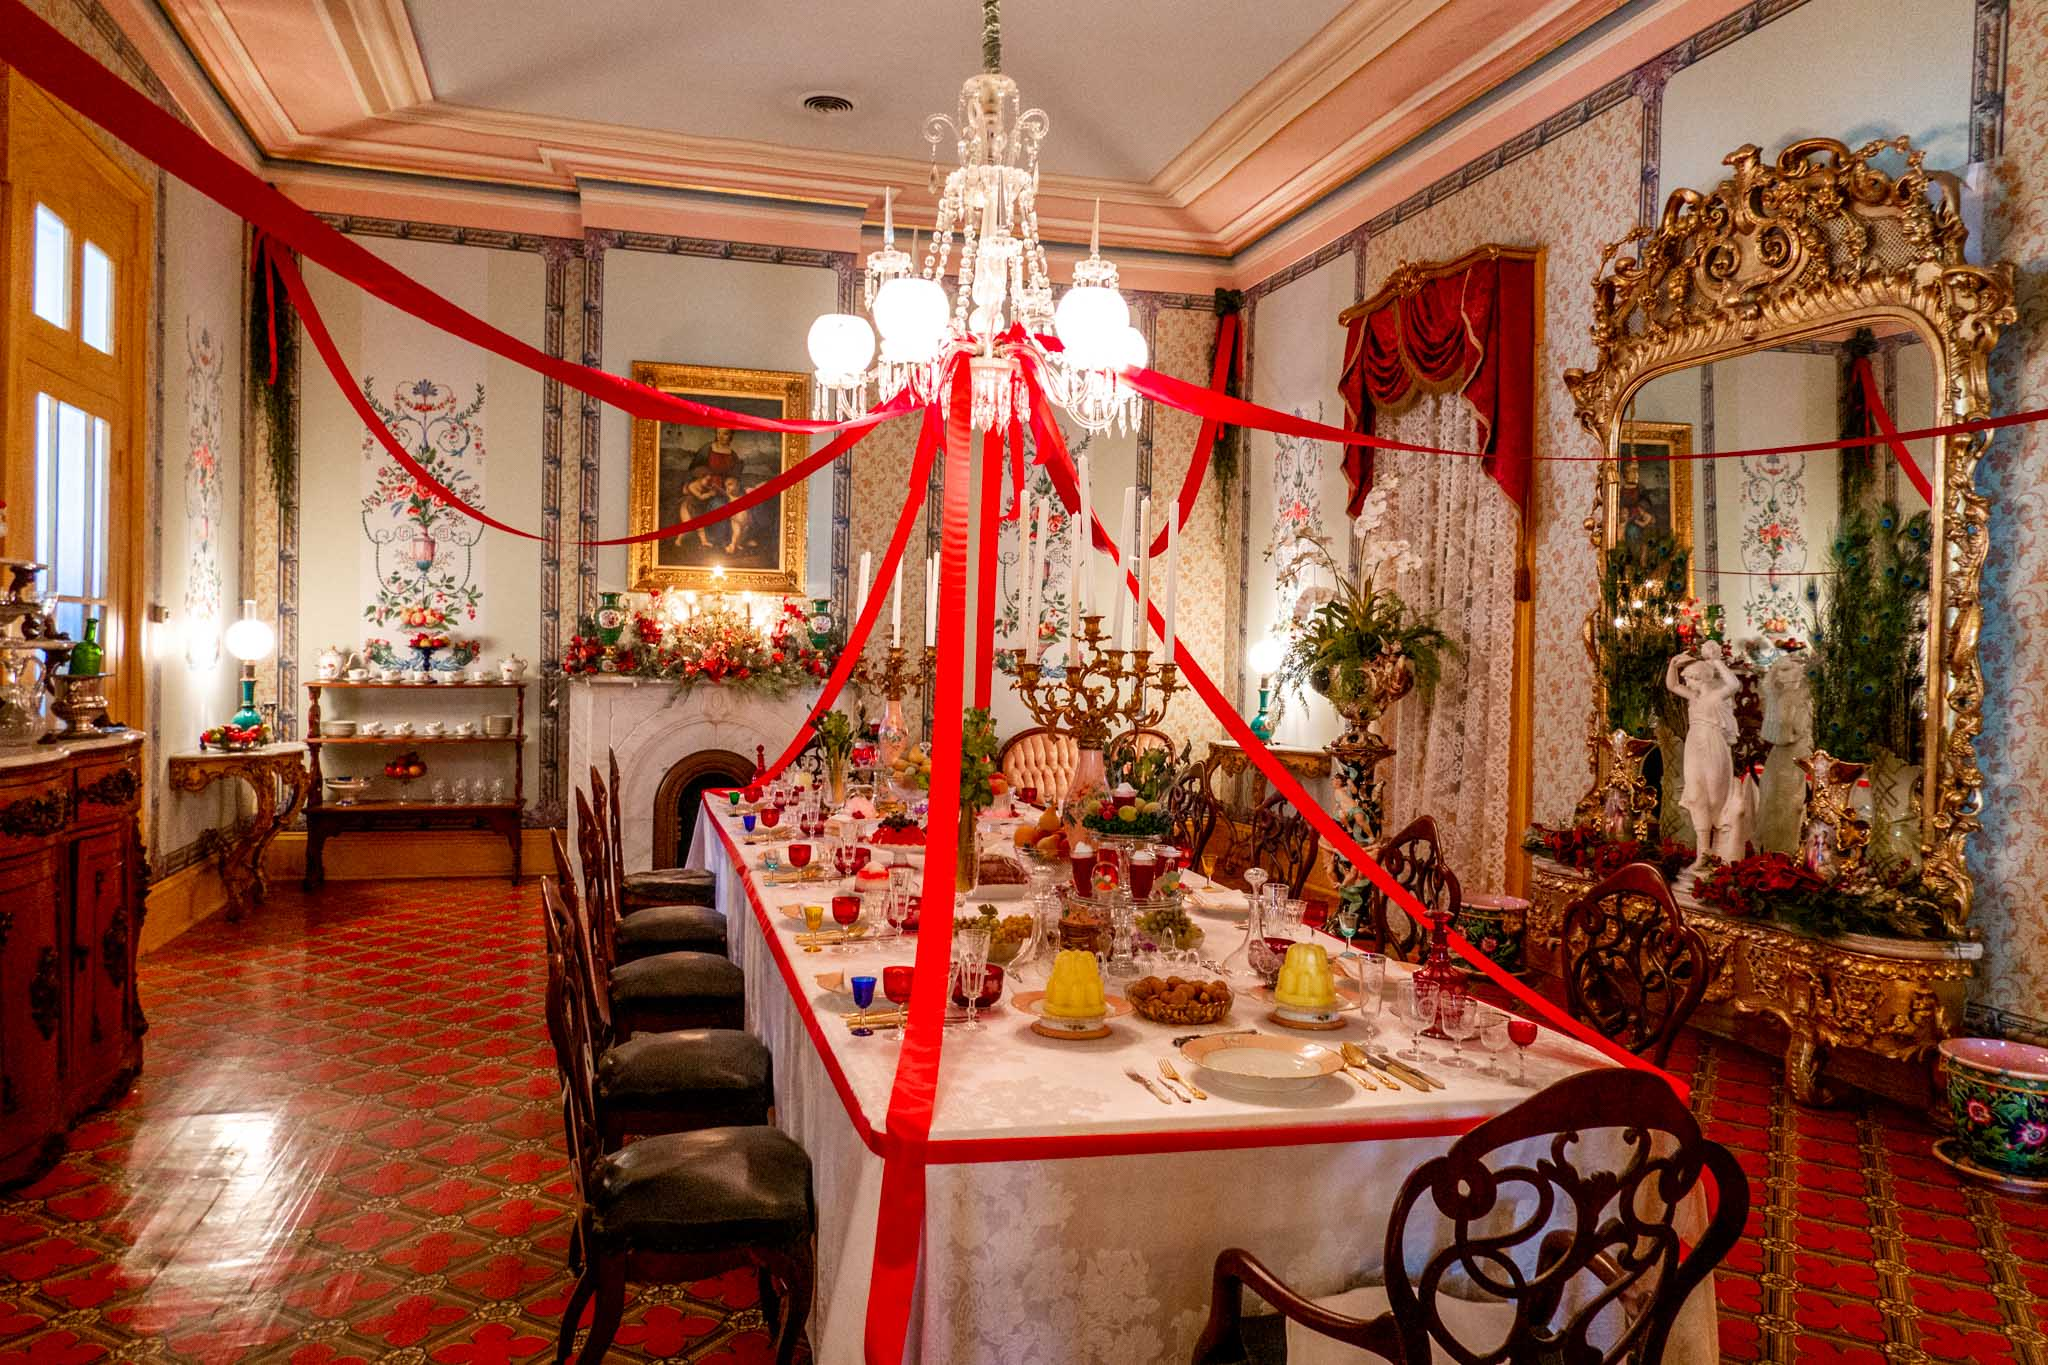 Formal dining room with set table and Christmas decorations at Belmont Mansion in Nashville TN